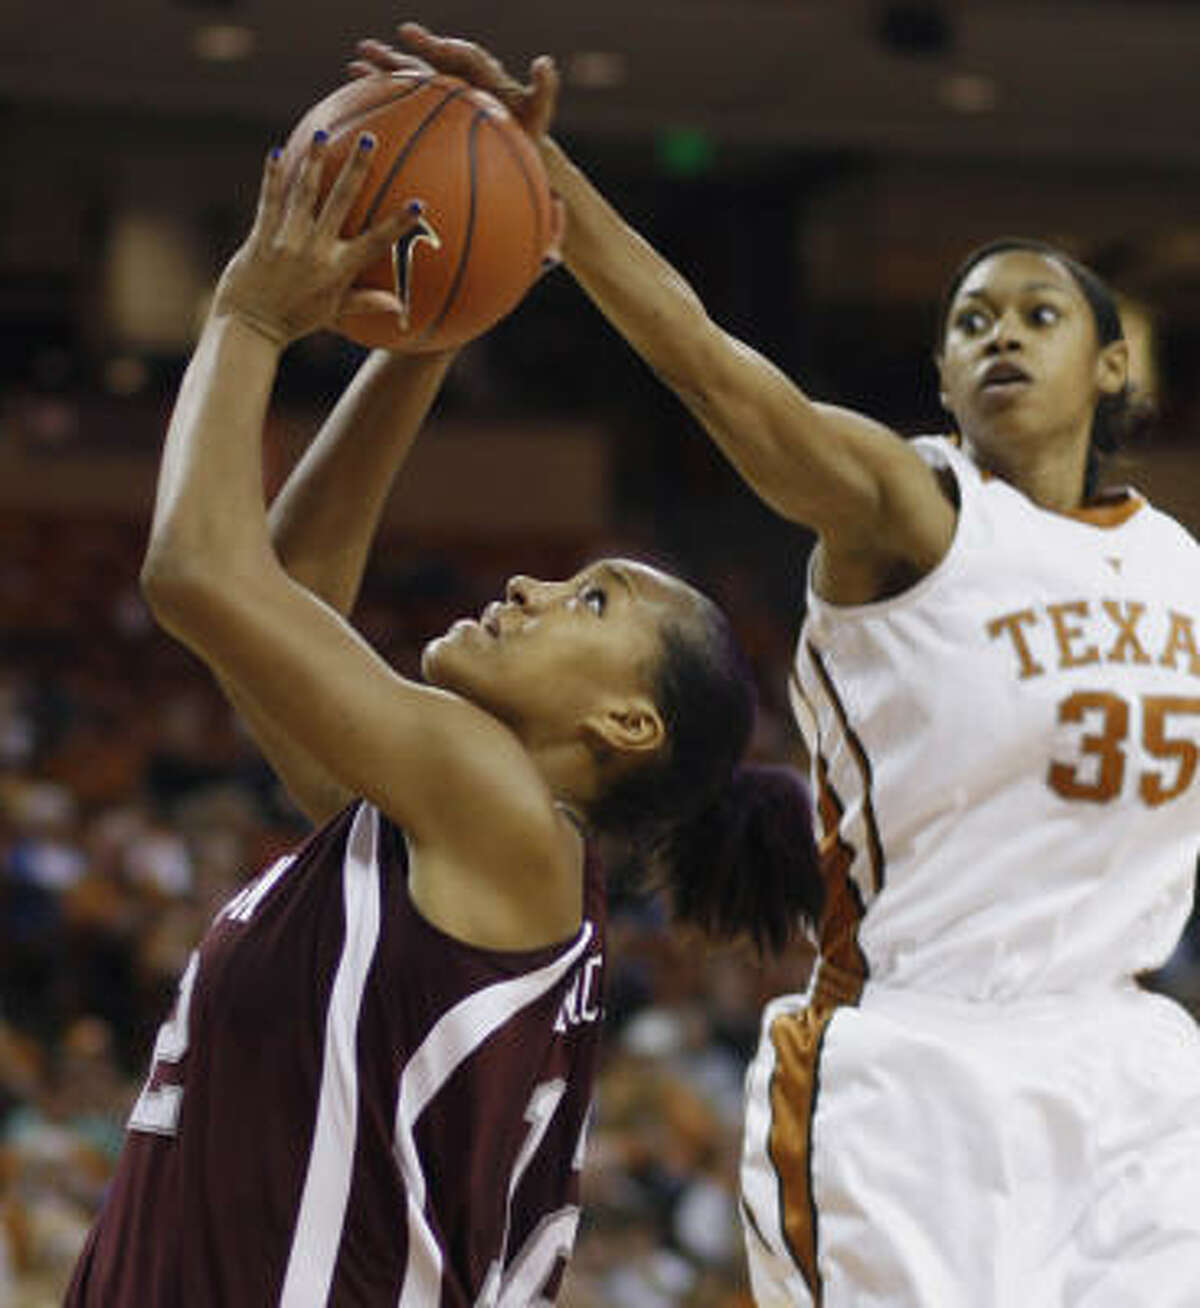 Texas forward Ashley Lindsey, right, blocks a shot from Texas A&M center La Toya Micheaux during the second half. Lindsey finished with three blocks and is now second in the Texas record book for career blocks.